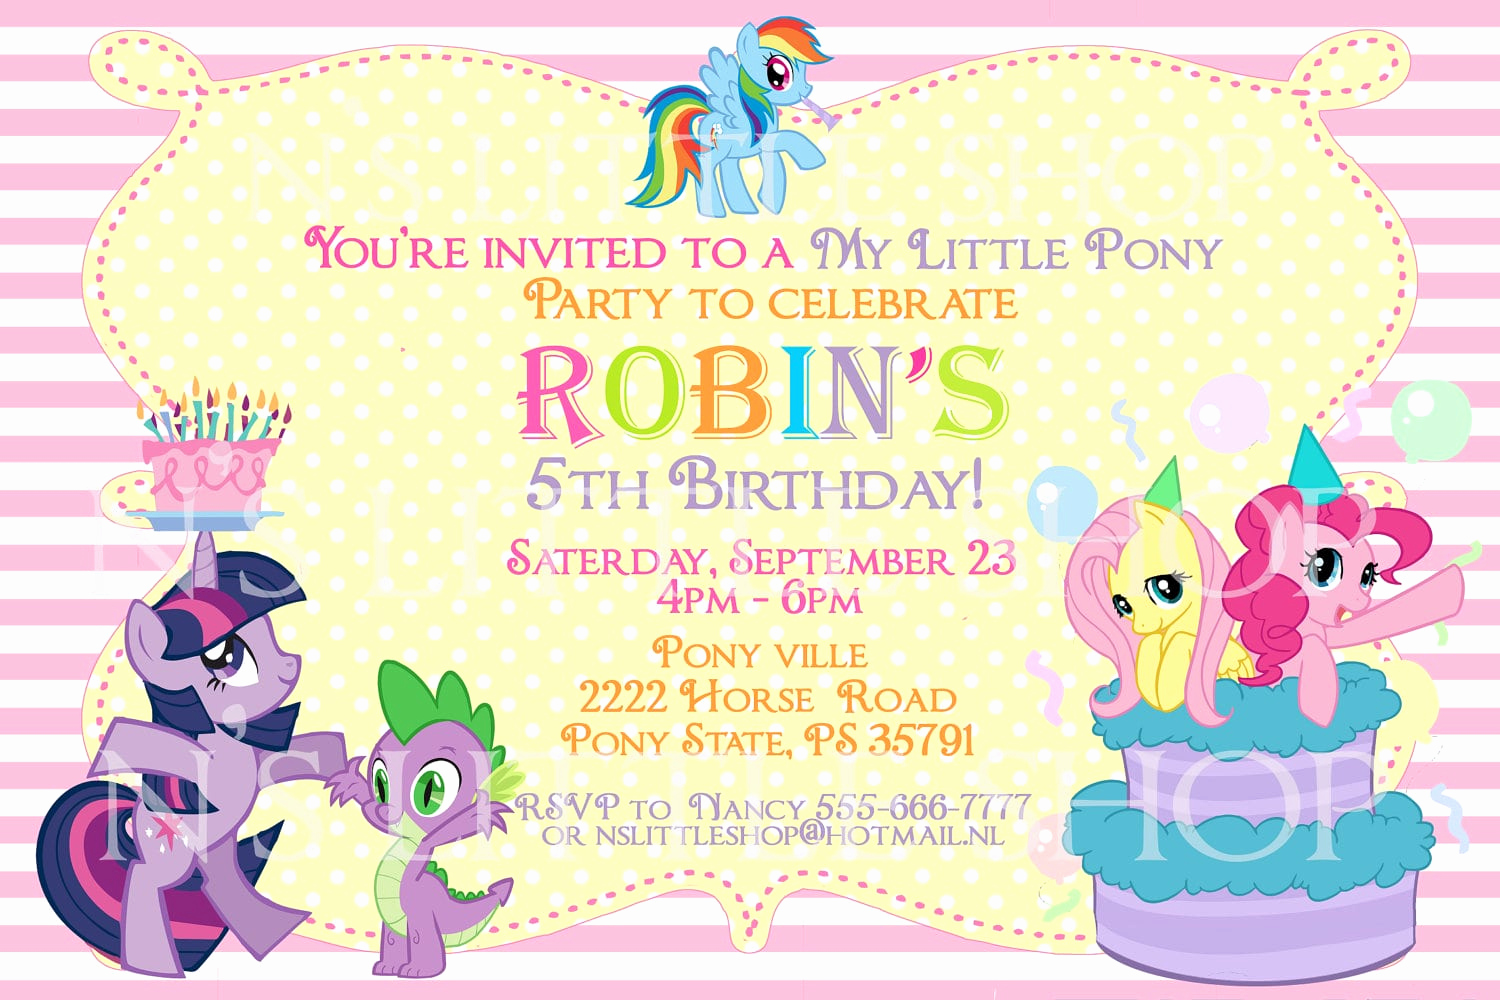 My Little Pony Invitation Template Luxury Free Printable Pony Party Invitation